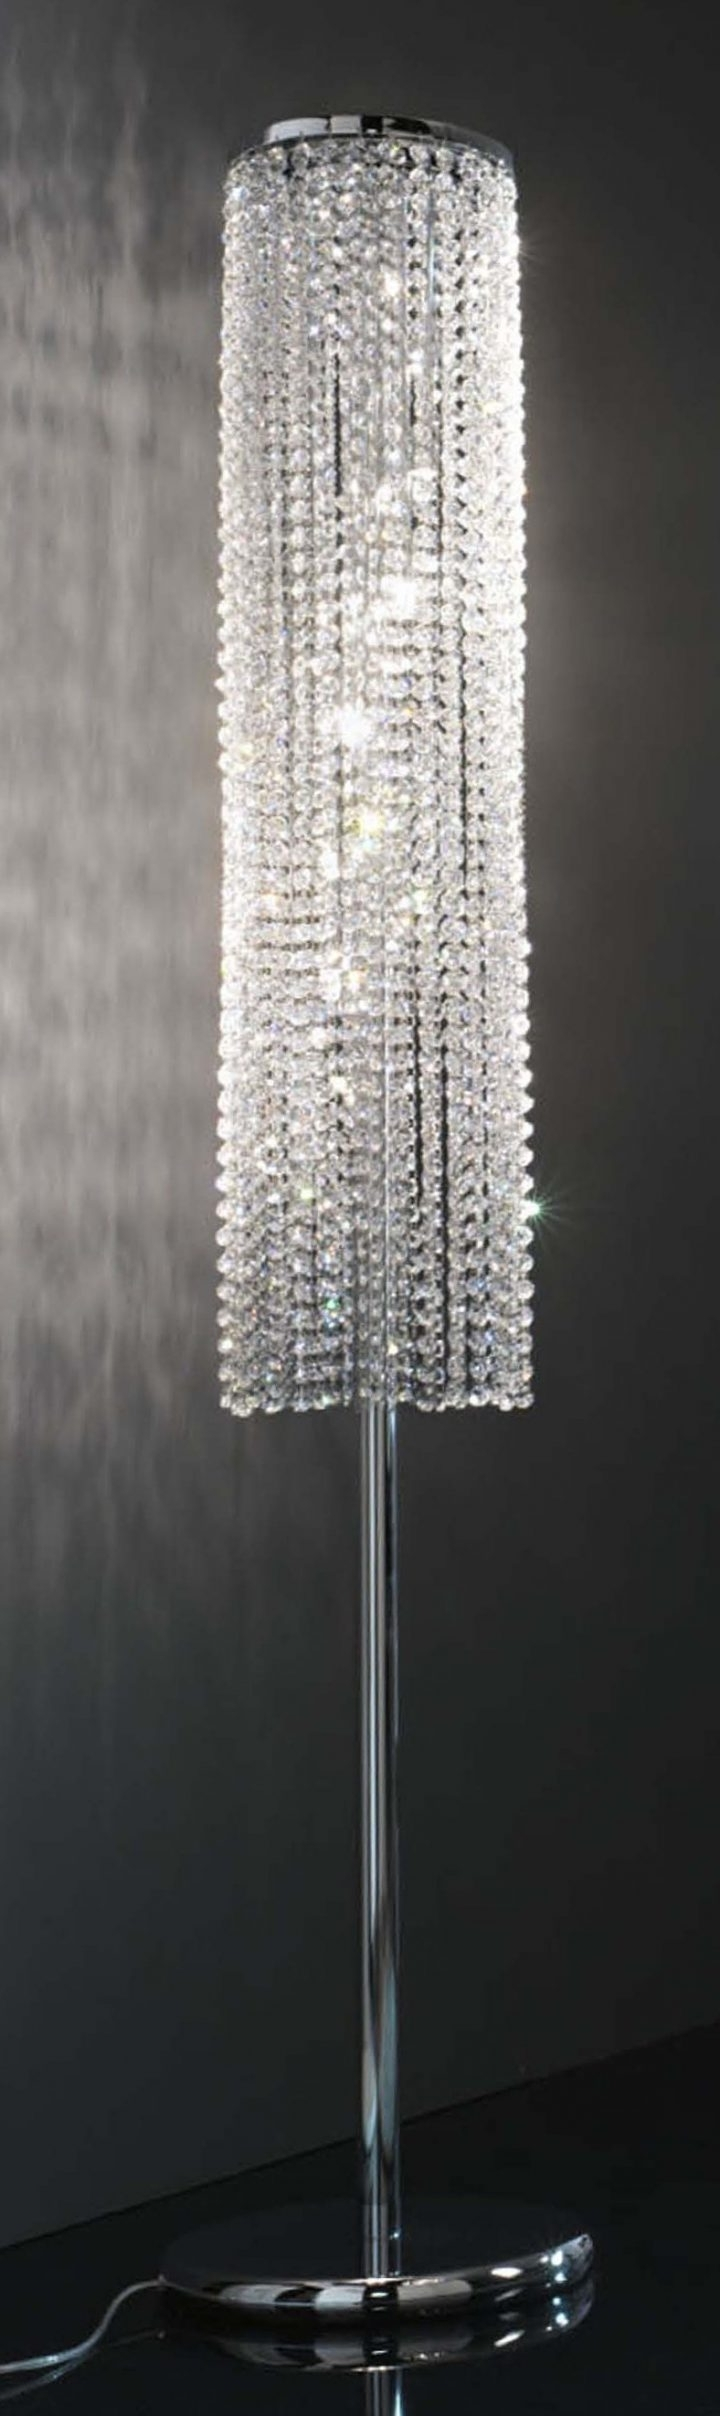 Crystal Chandelier Standing Lamps Intended For Latest Chandeliers Design : Magnificent Floor Lamp Crystal Chandelier Turn (View 9 of 20)